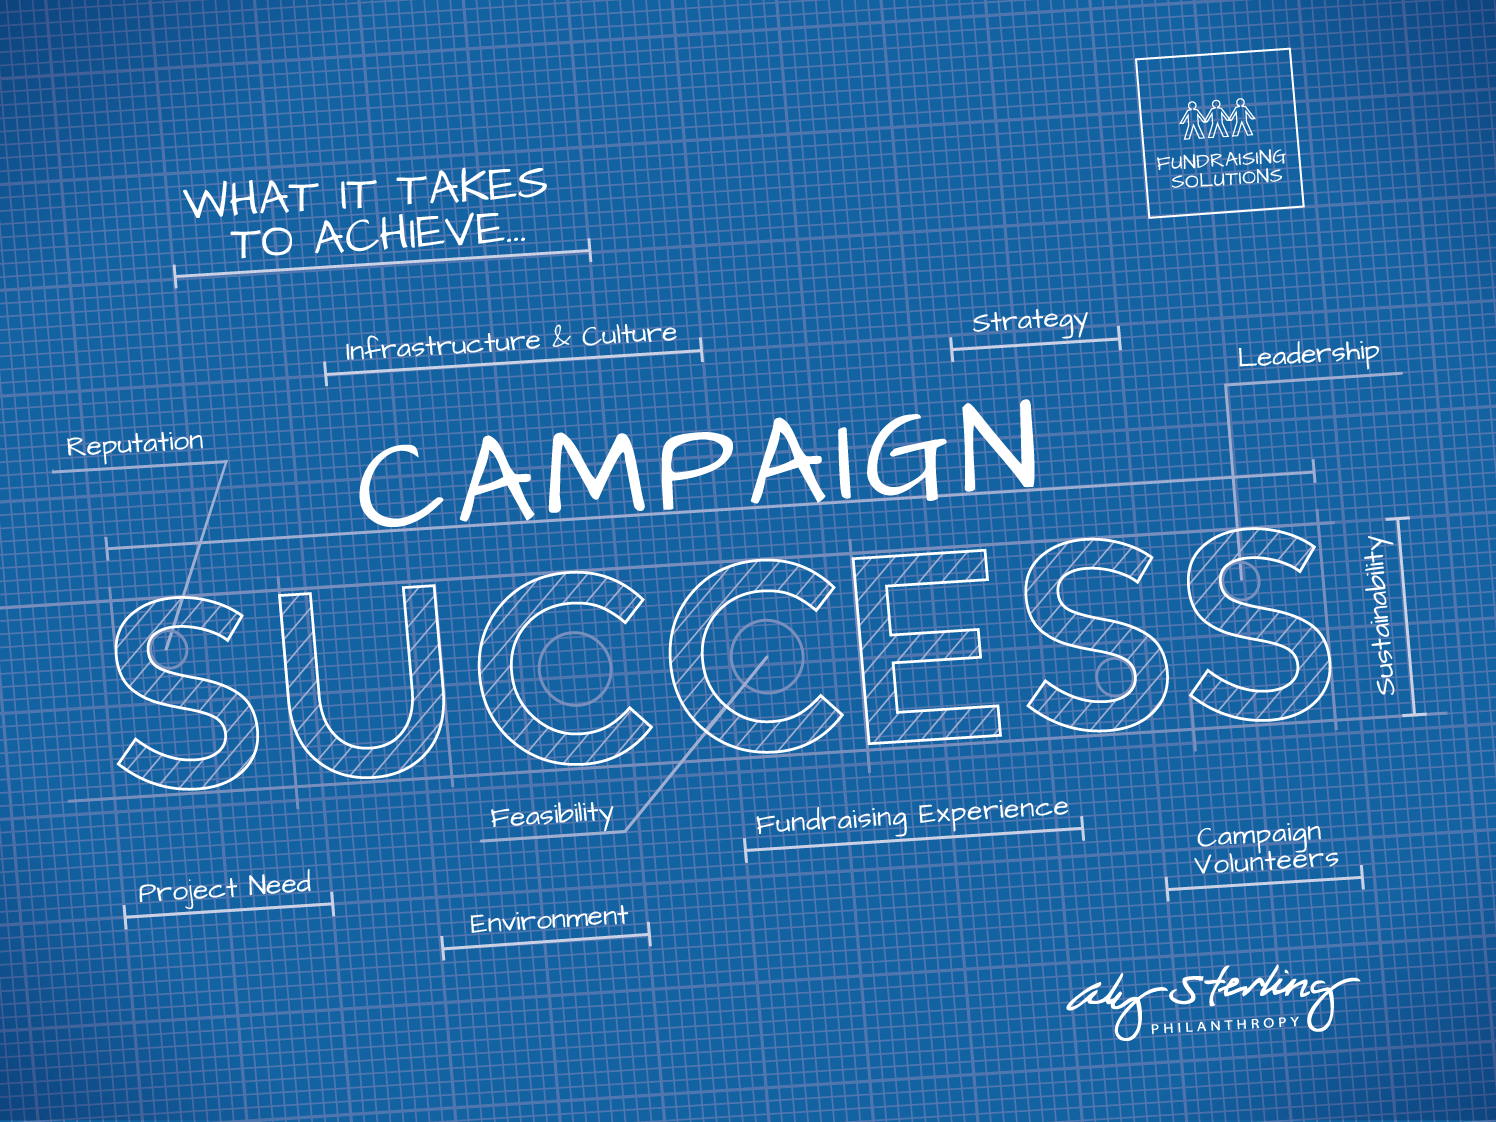 What it takes to achieve Campaign Success